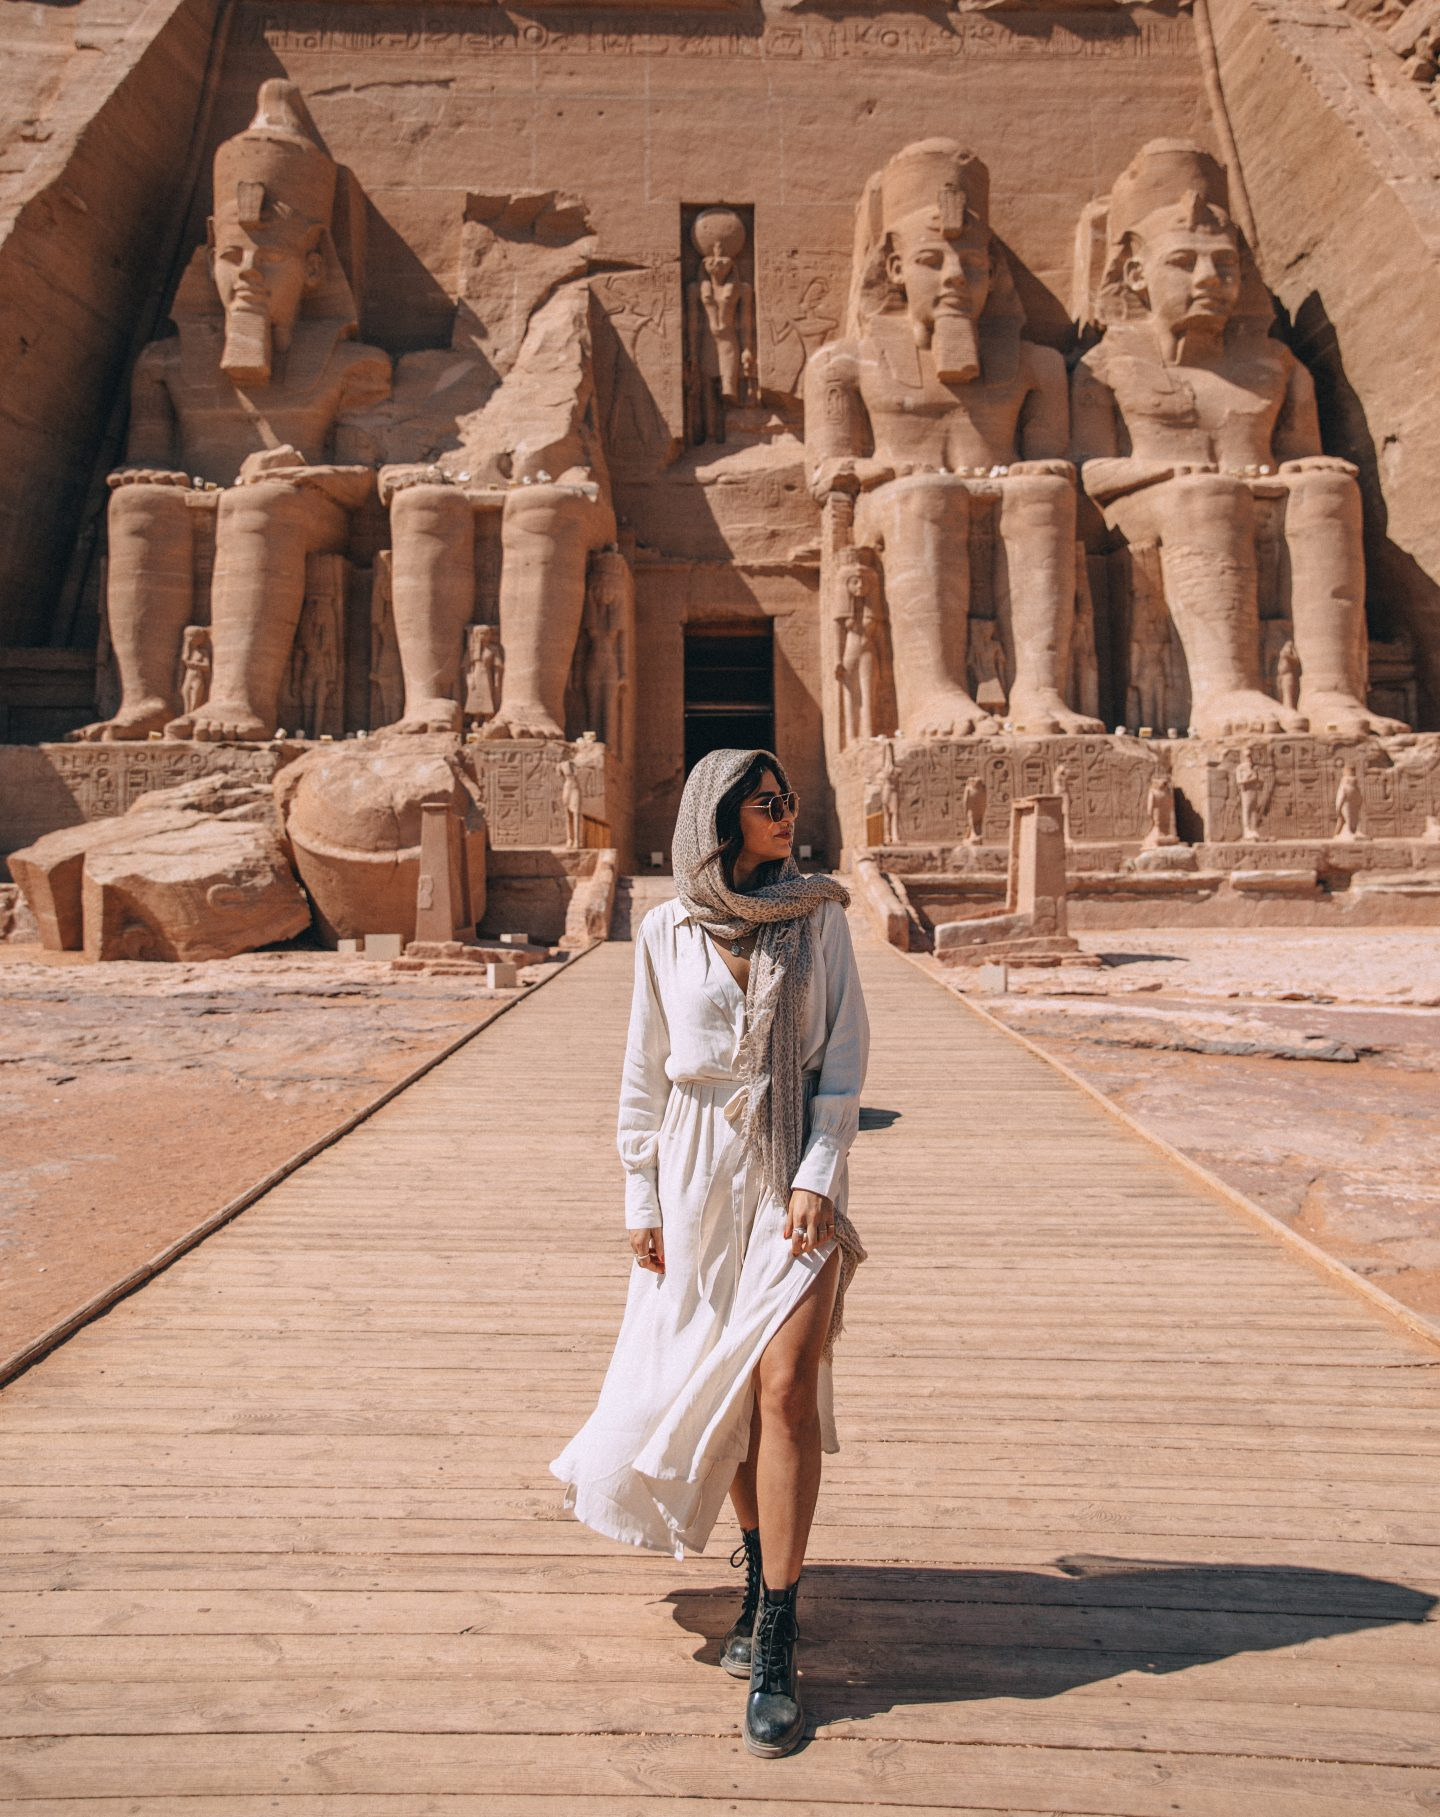 A woman posing in front of the temple at Abu Simbel in Egypt.